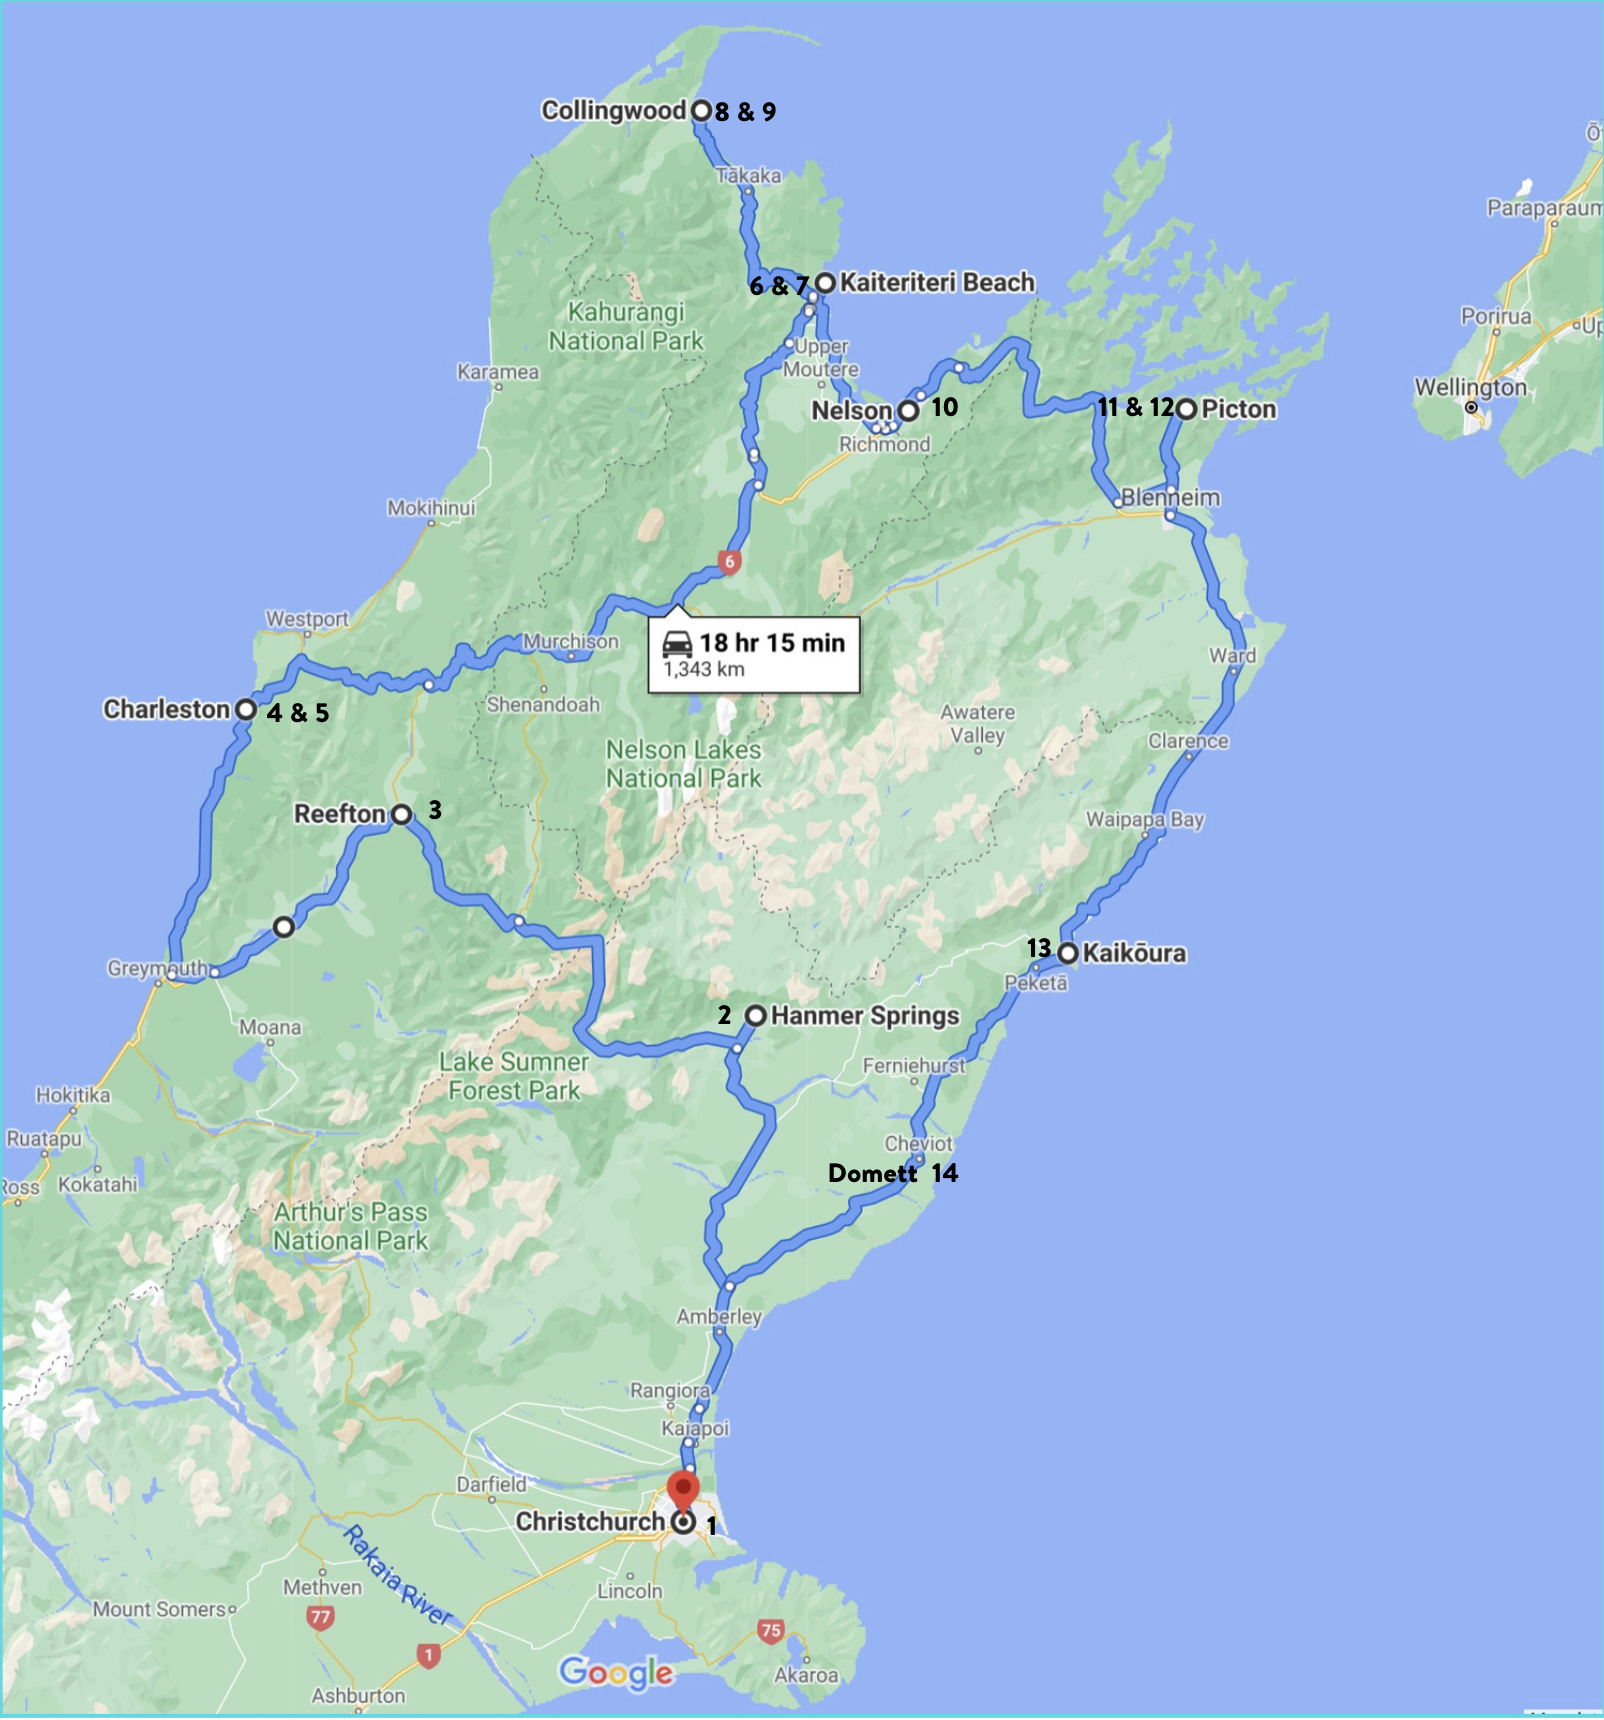 Map of tour route